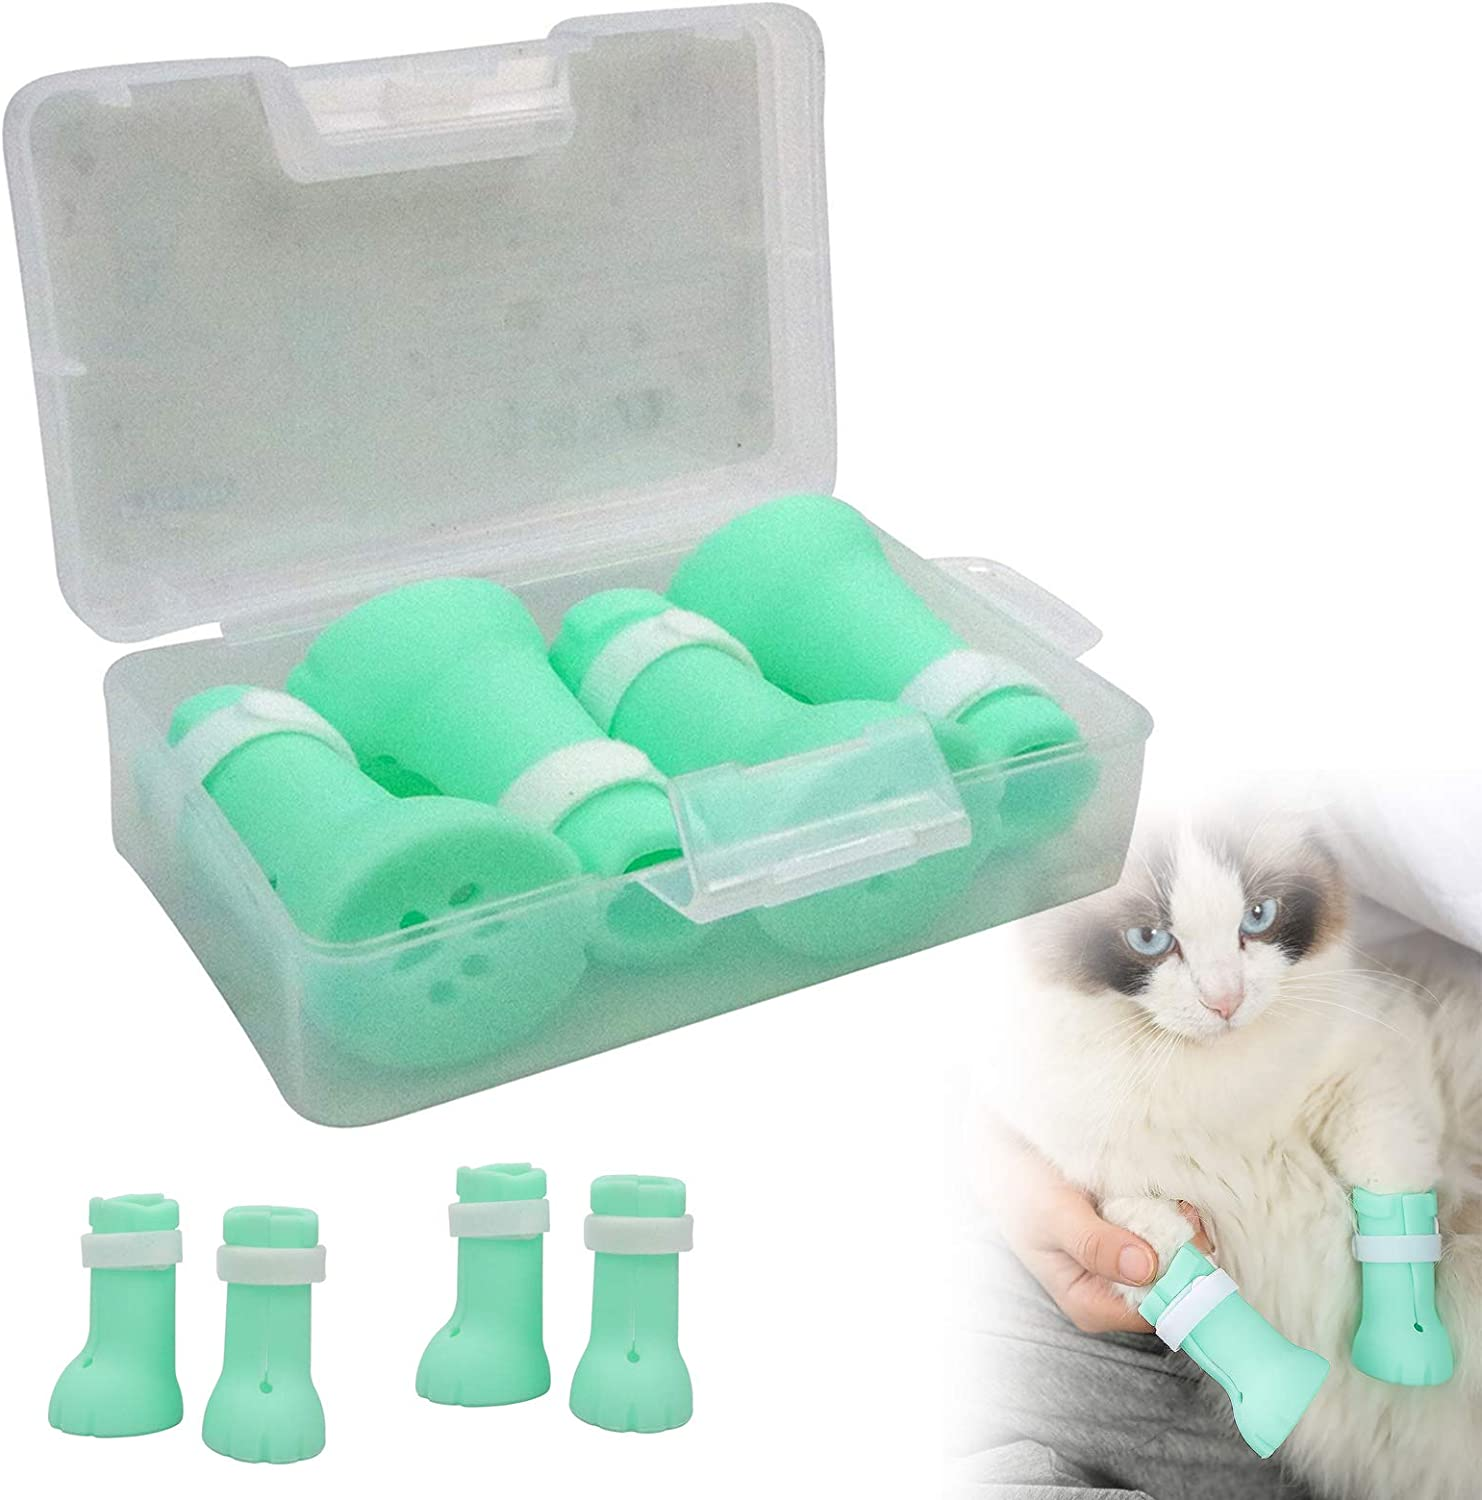 N/W Silicone Cat Nail Covers Caps, Anti-Scratch Cat Claw Covers, Adjustable Cat Nail Caps Cat Paw Protector, Pet Scratching Restraint Booties Kitten Cat Shoes for Home Bathing, Shaving Checking